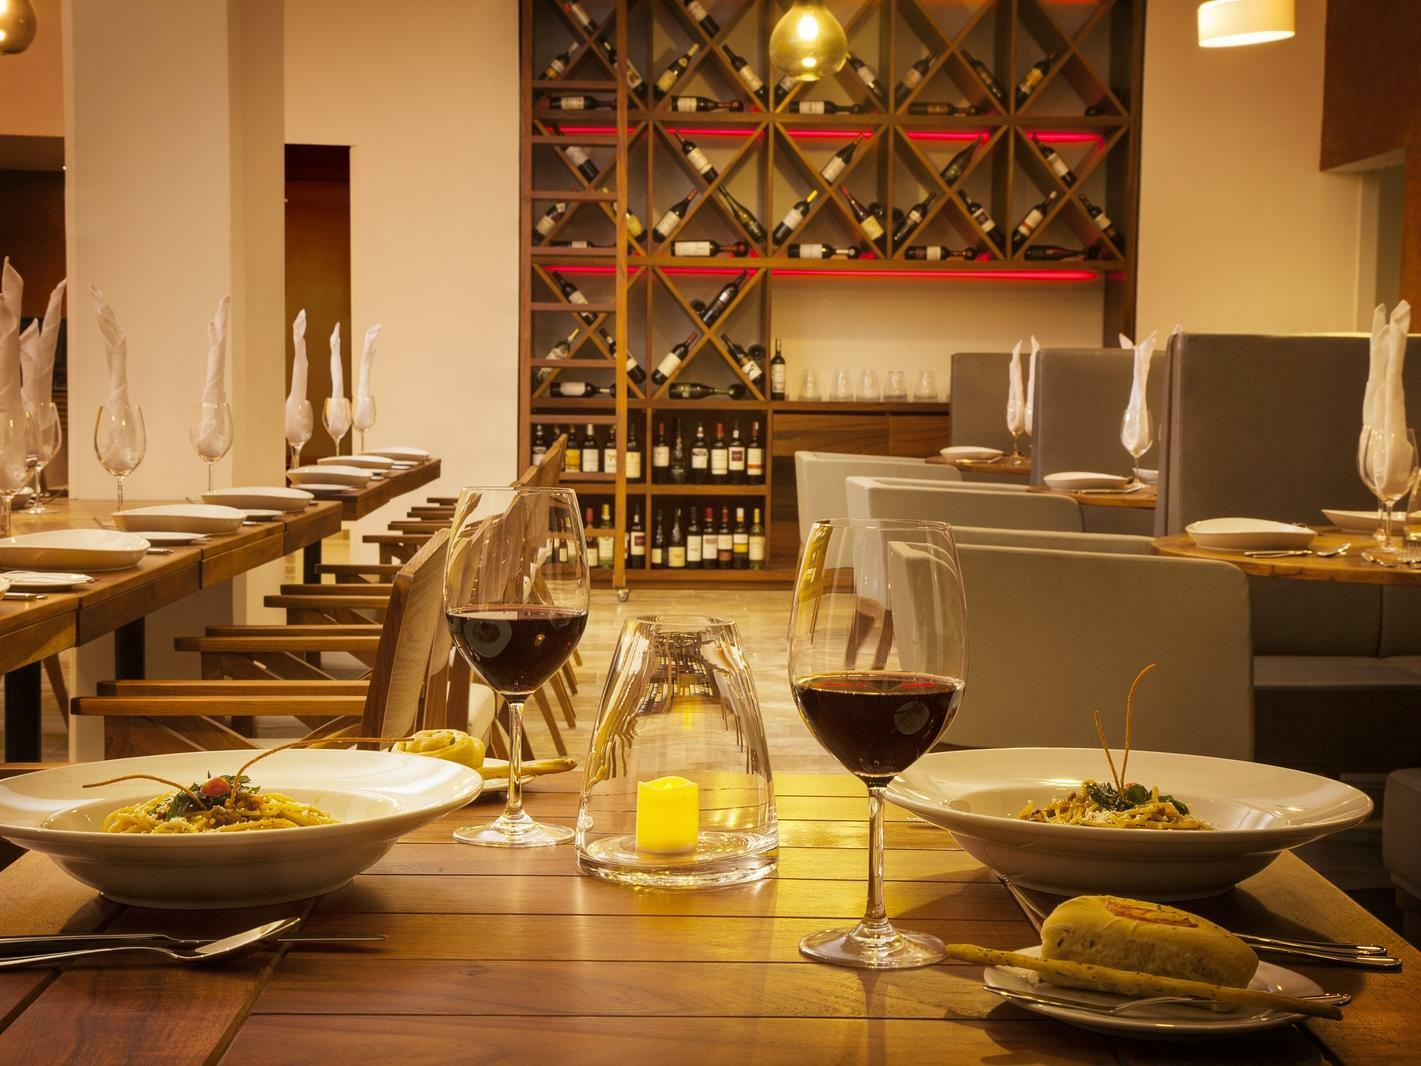 dining table with food and wine glasses